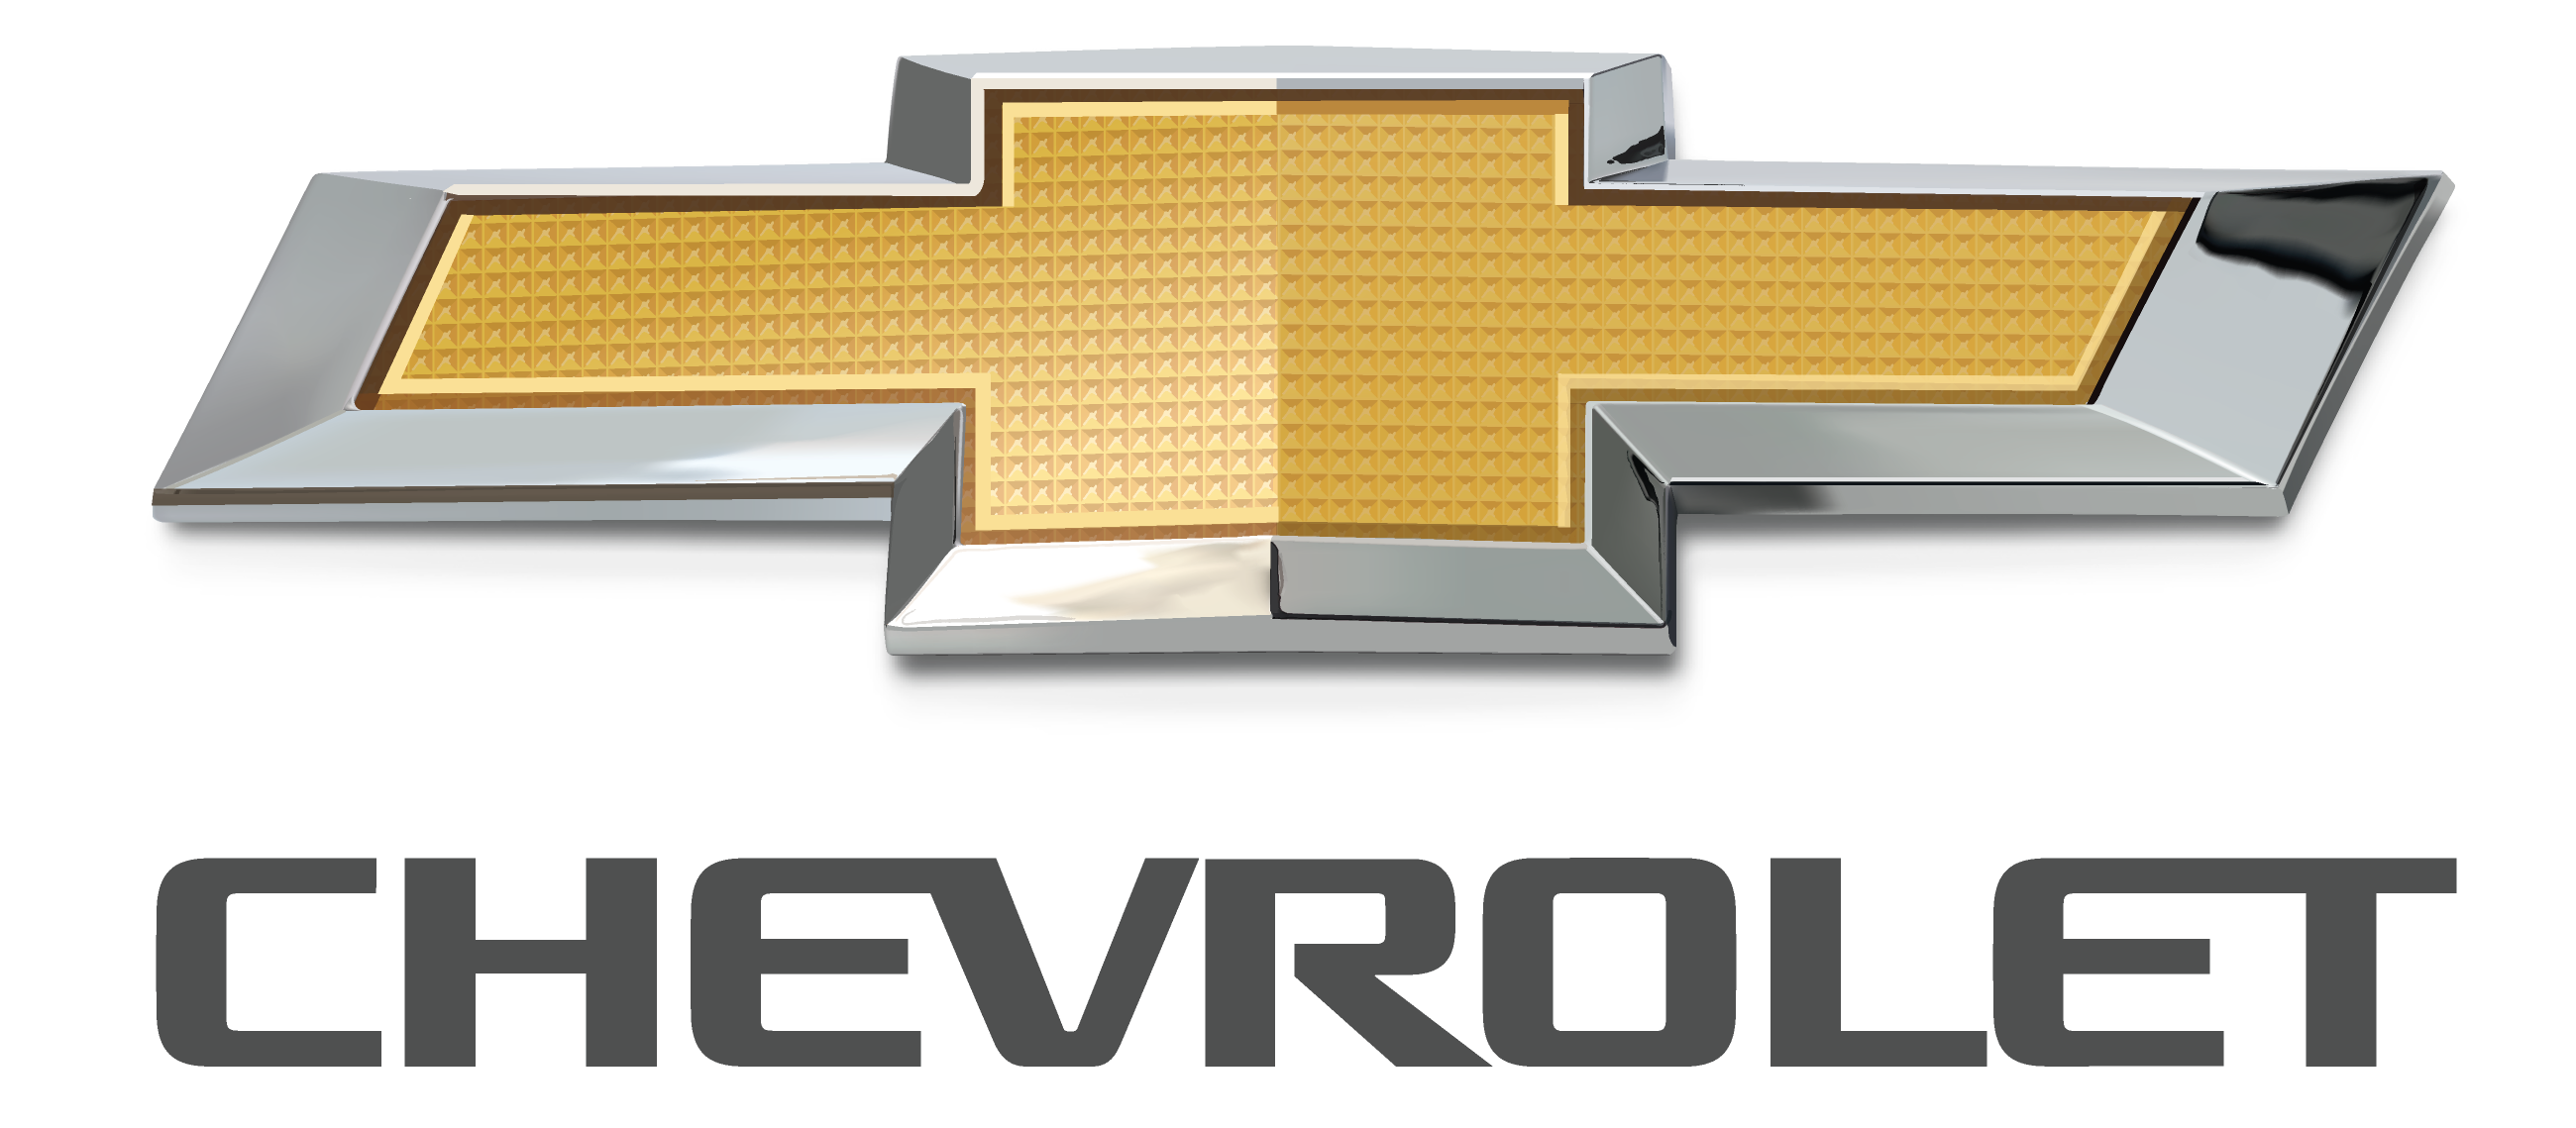 Chevrolet text logo png. Index of images admin